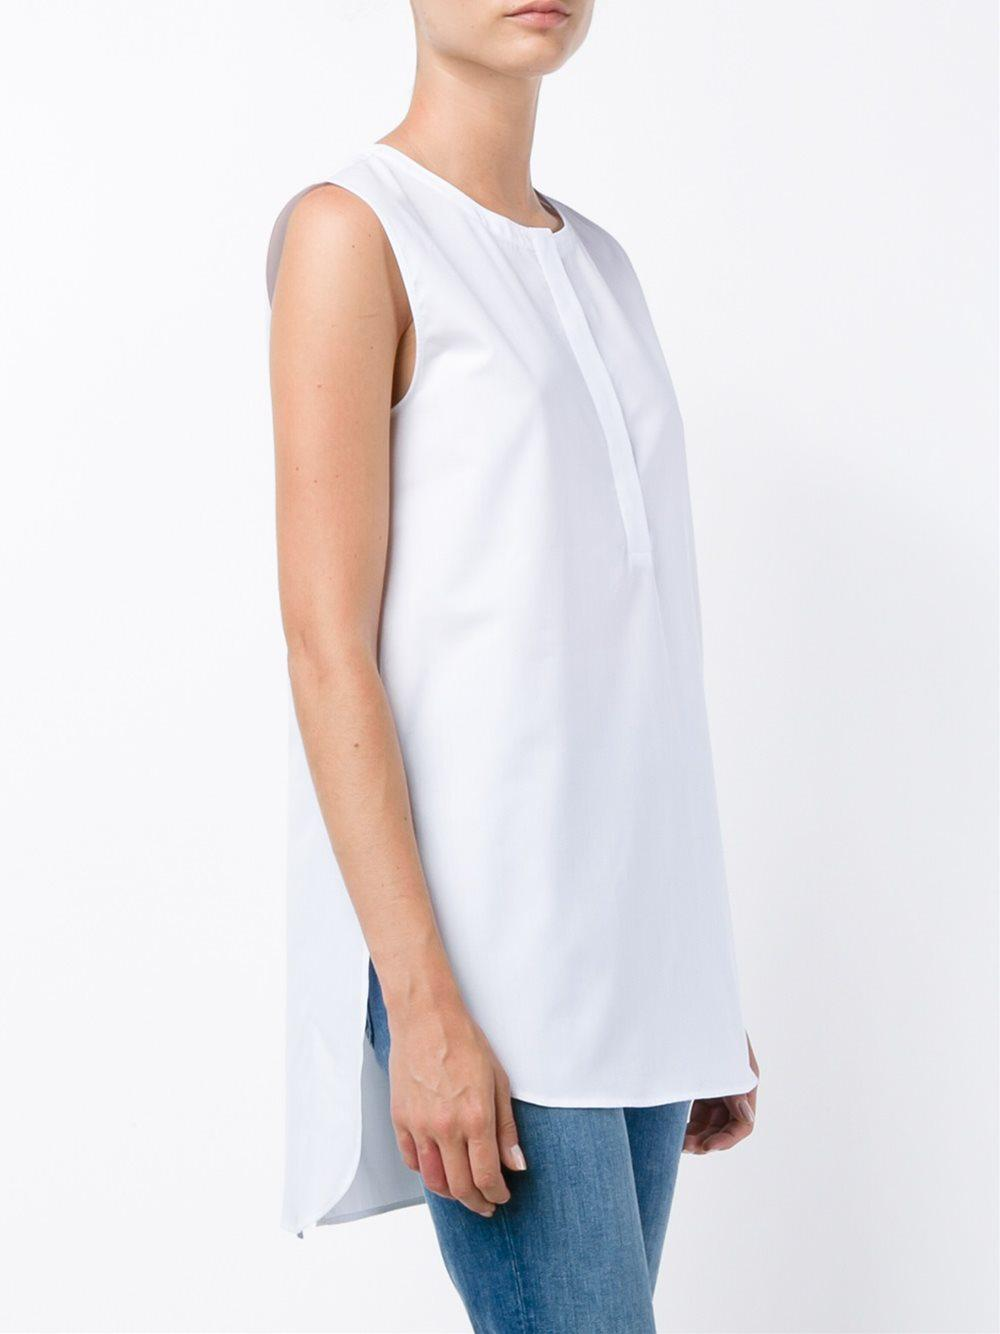 sleeveless blouse - White Adam Lippes Cheap Sale Exclusive zISmXpBney